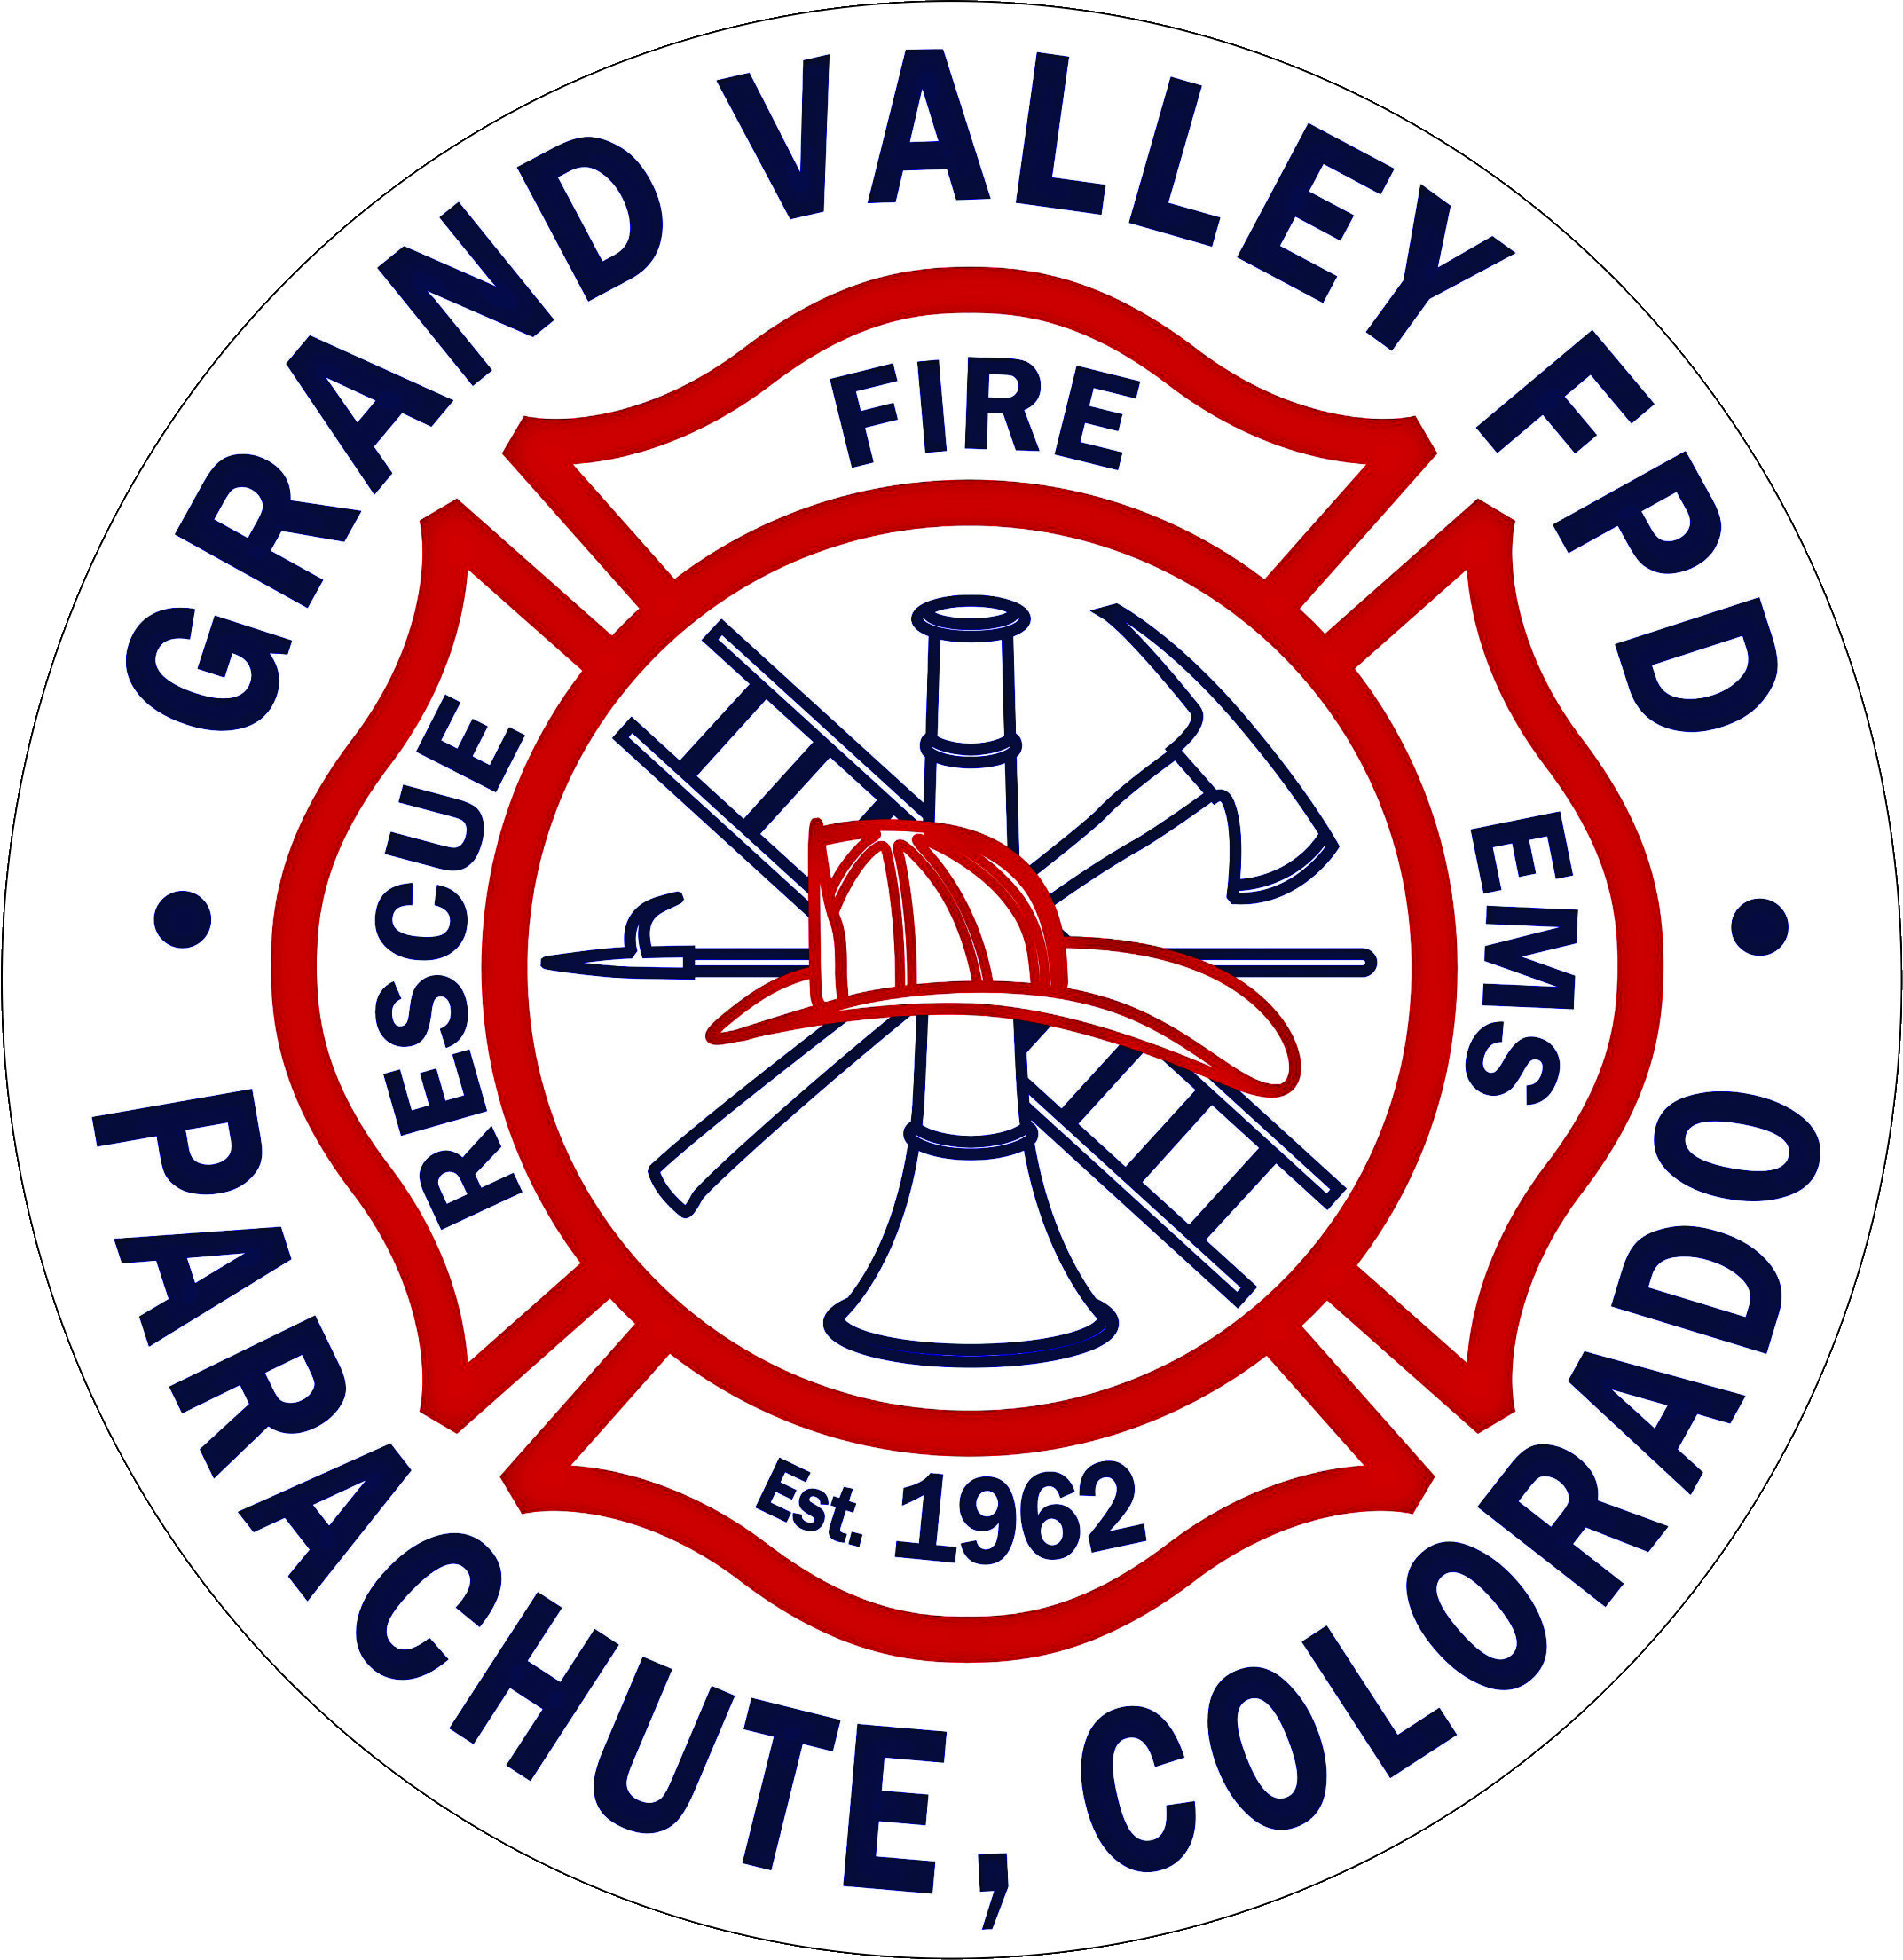 Grand Valley Fire Department